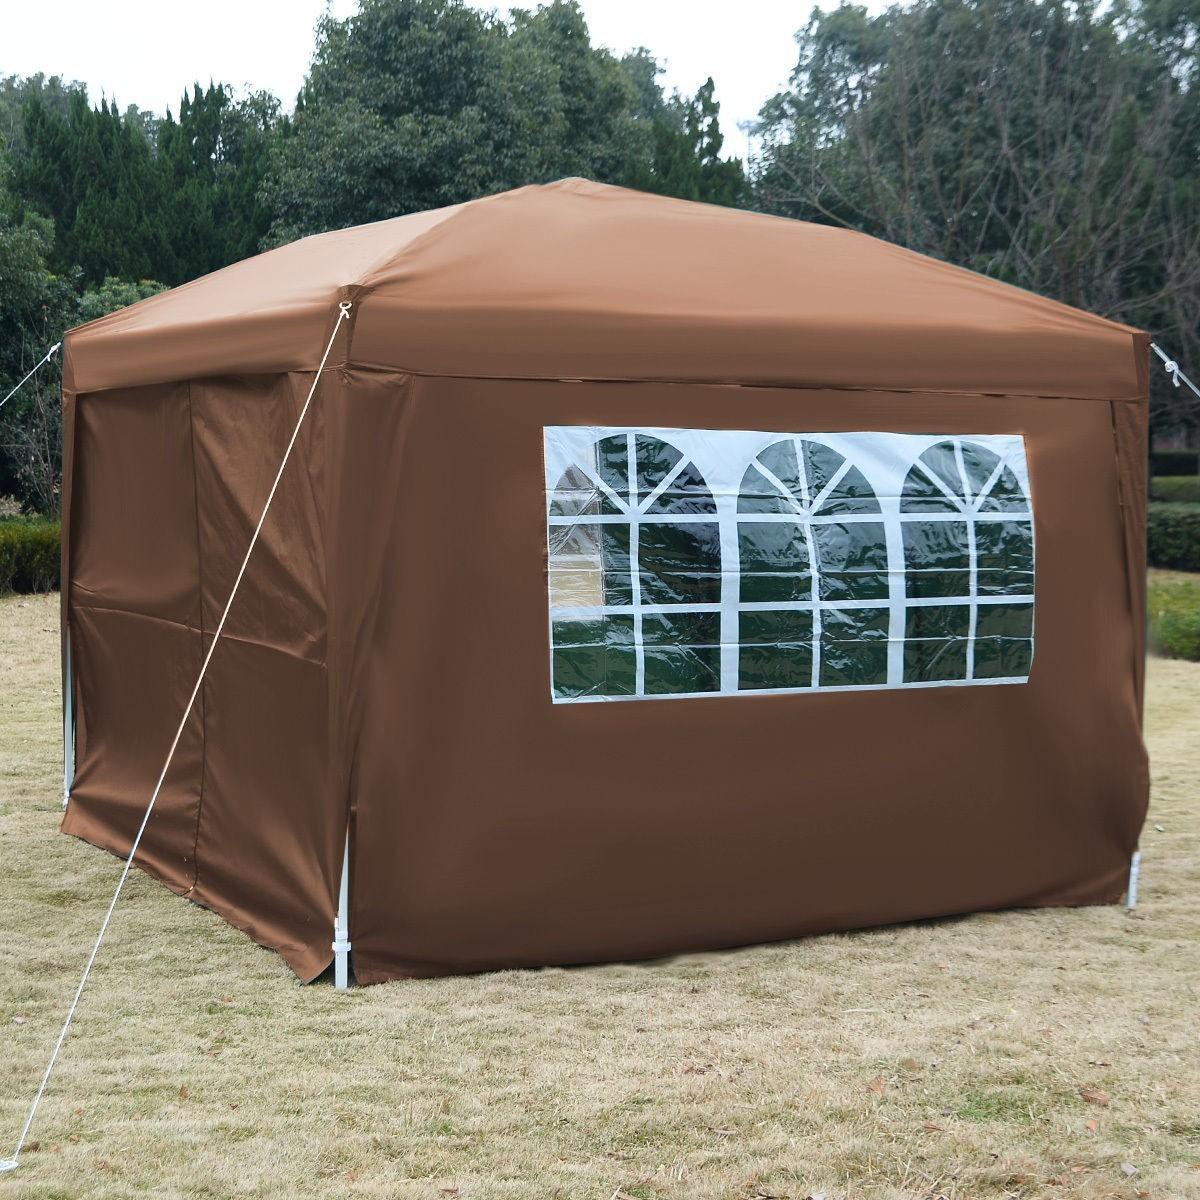 Apontus Outdoor Easy Pop Up Tent Cabana Canopy Gazebo with Walls 10u0027 x 10u0027 & Apontus Outdoor Easy Pop Up Tent Cabana Canopy Gazebo with Walls ...